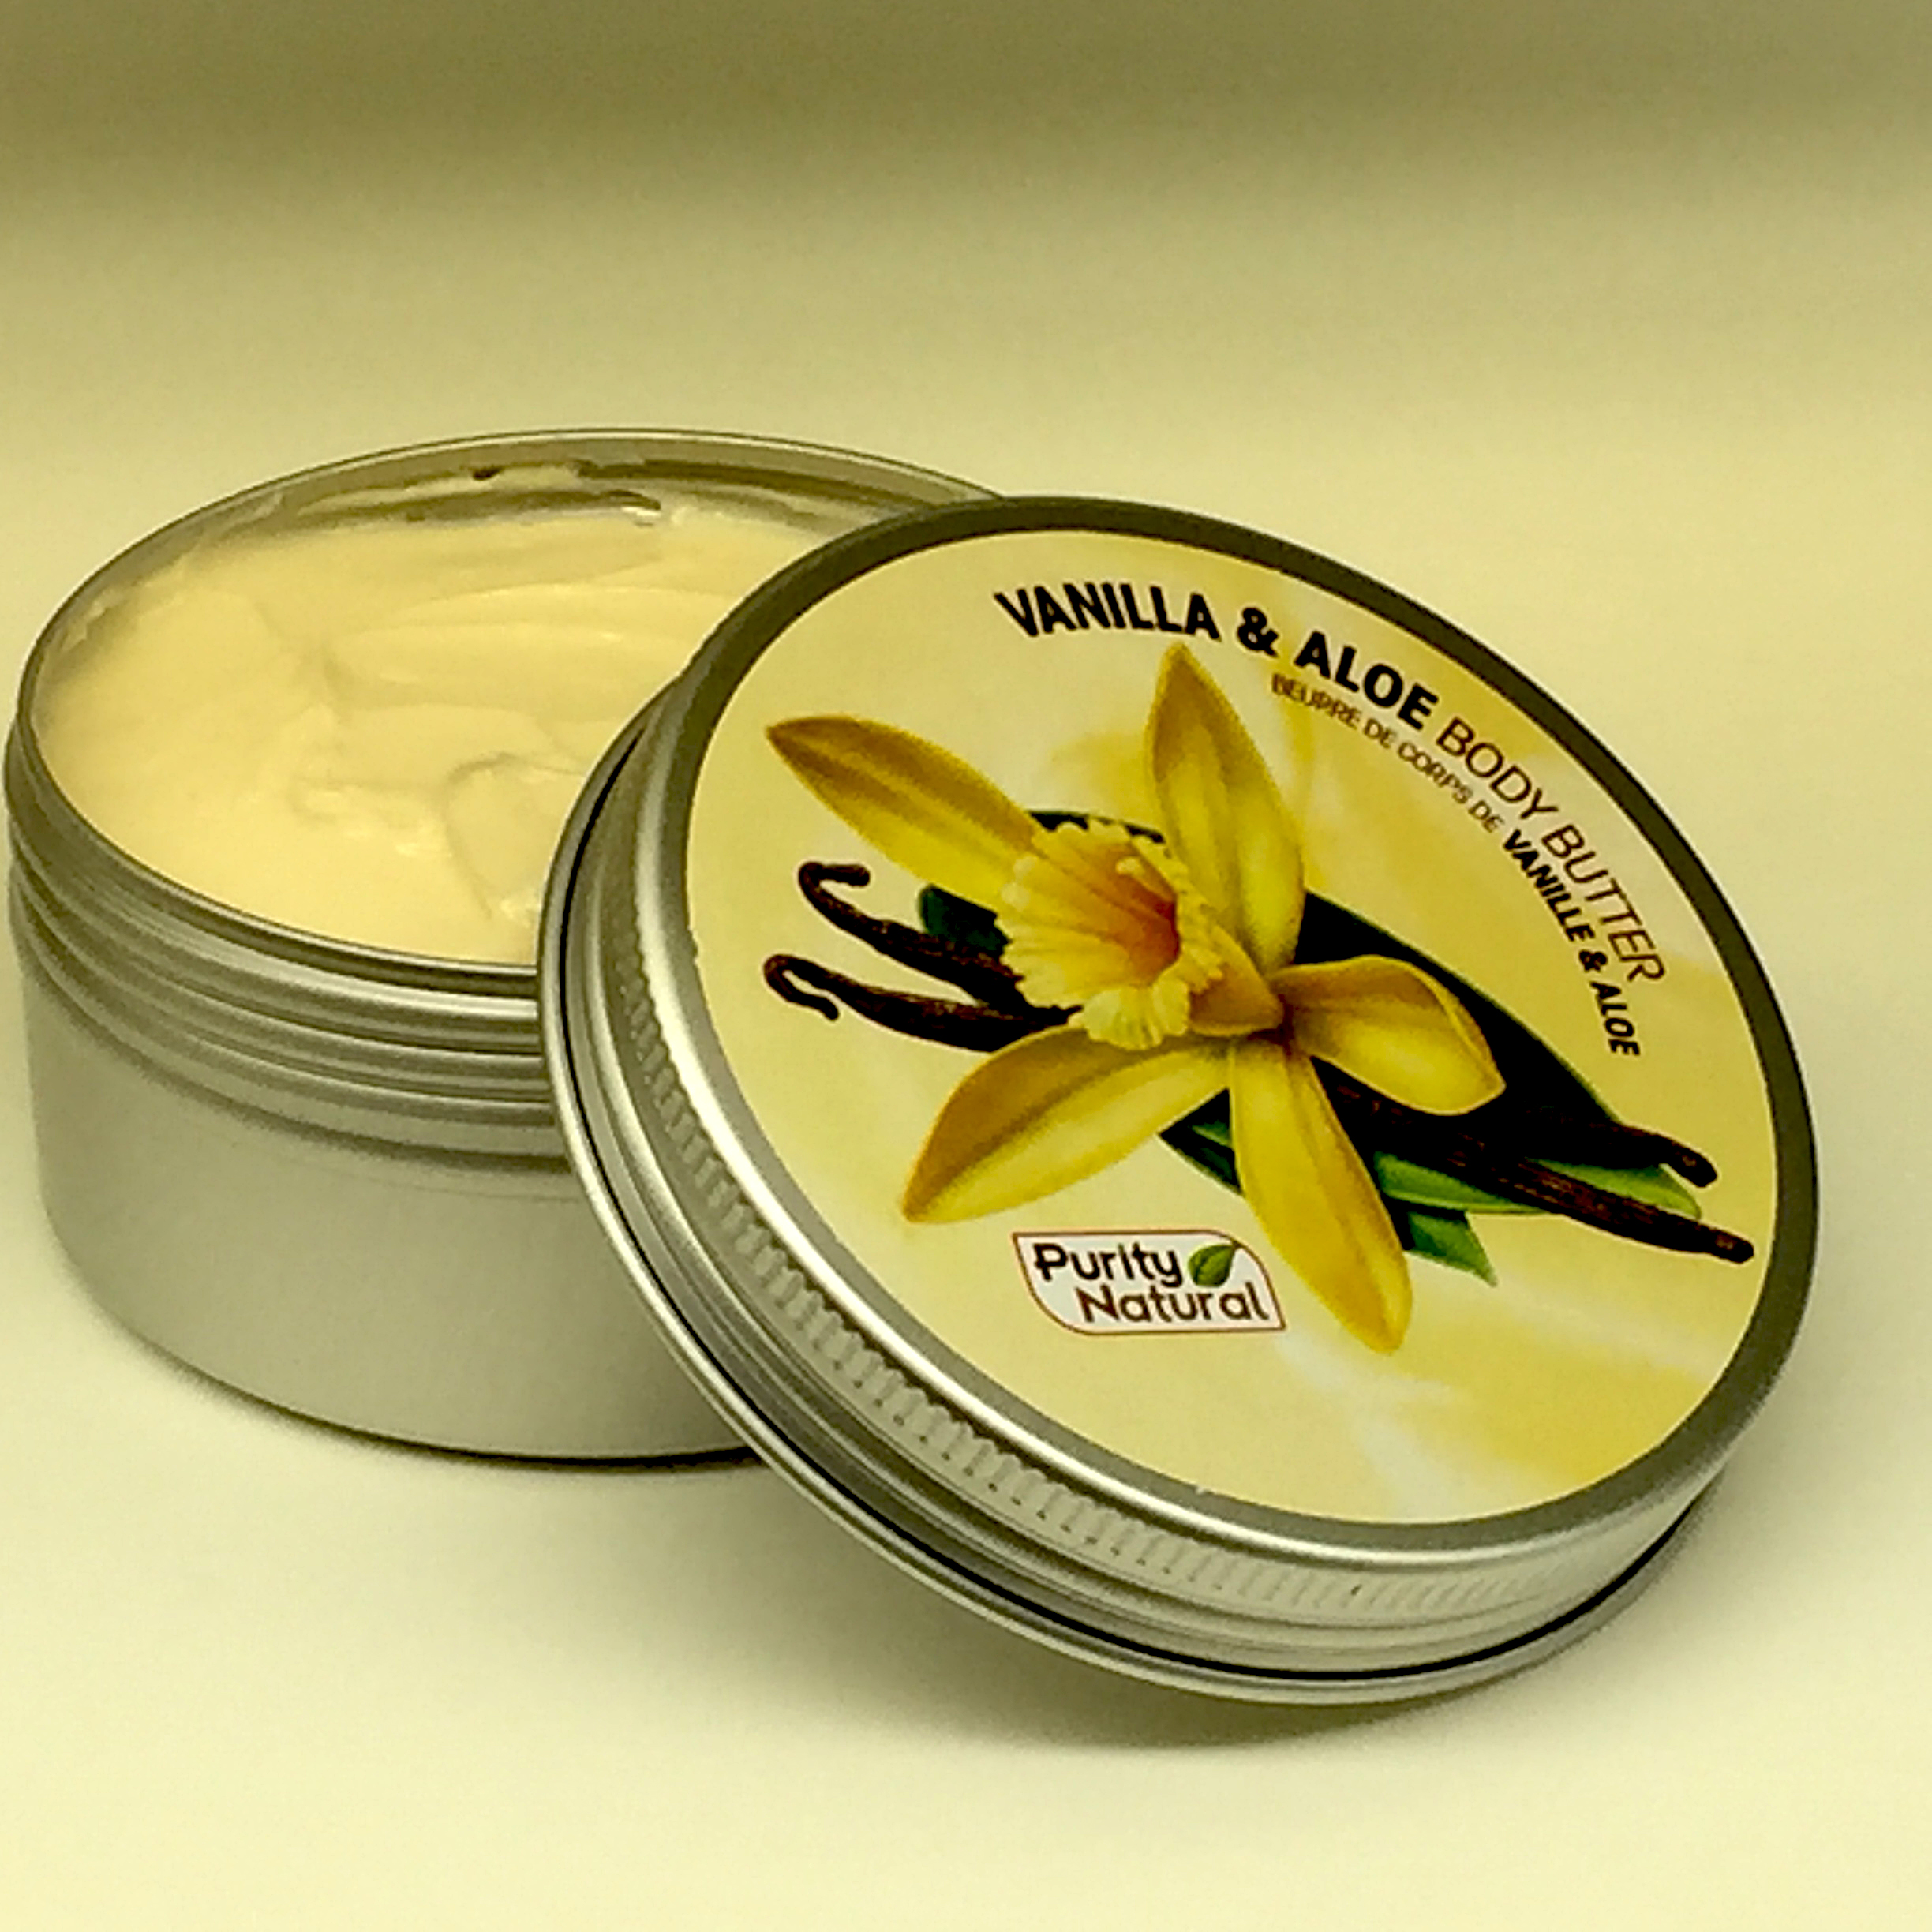 Vanilla Aloe Organic Herbal  Body Butter Moisturizer | Purity Natural